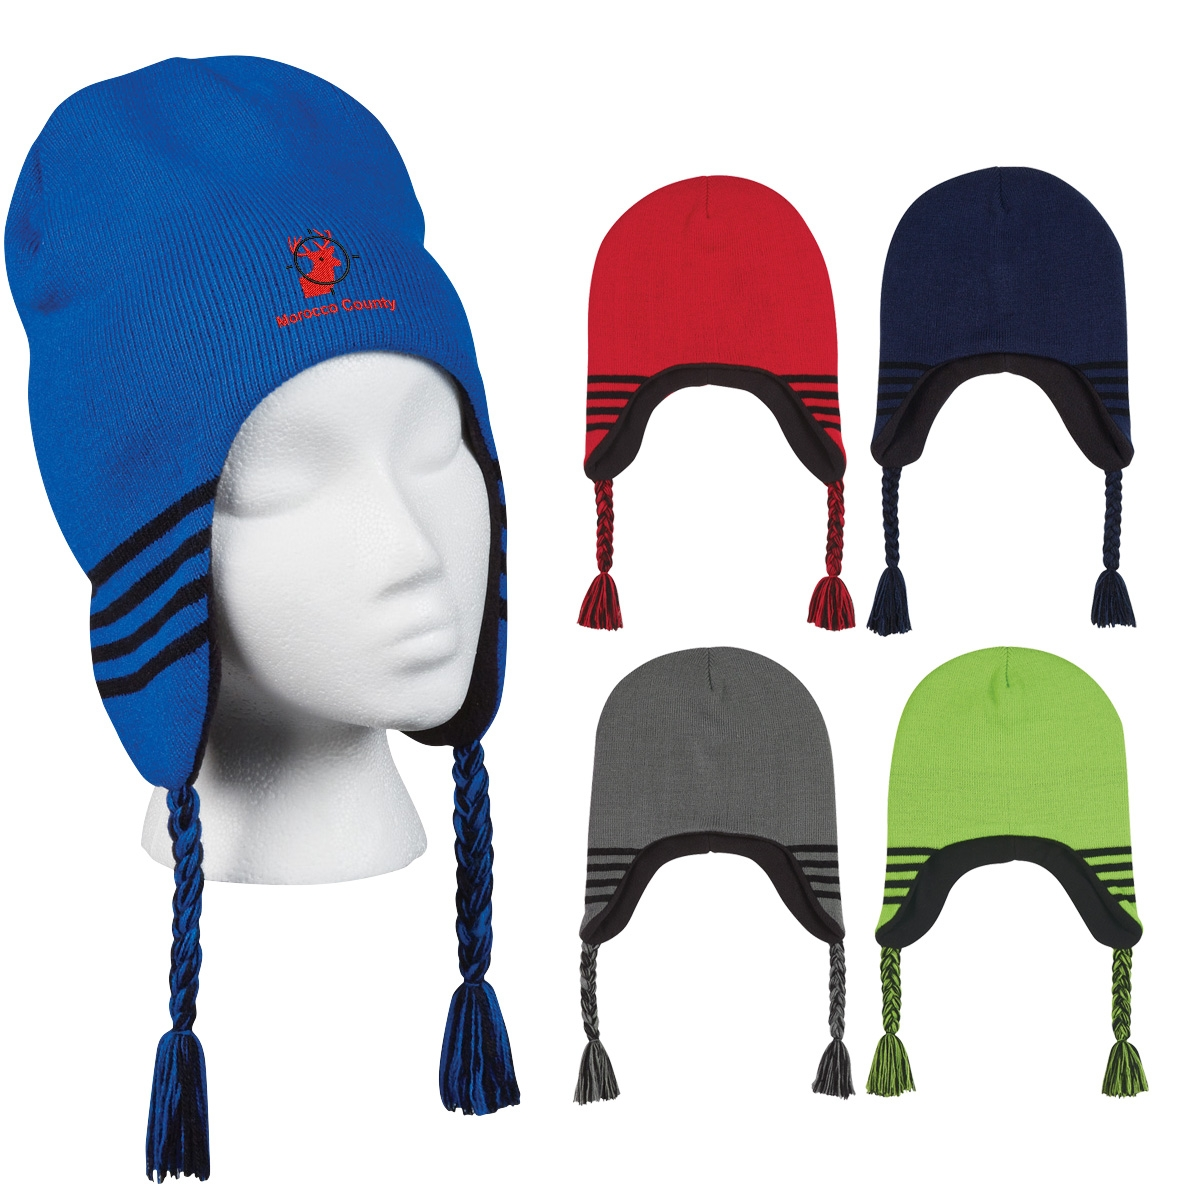 Promotional Ski Beanie With Ear Flaps  83209e571f5